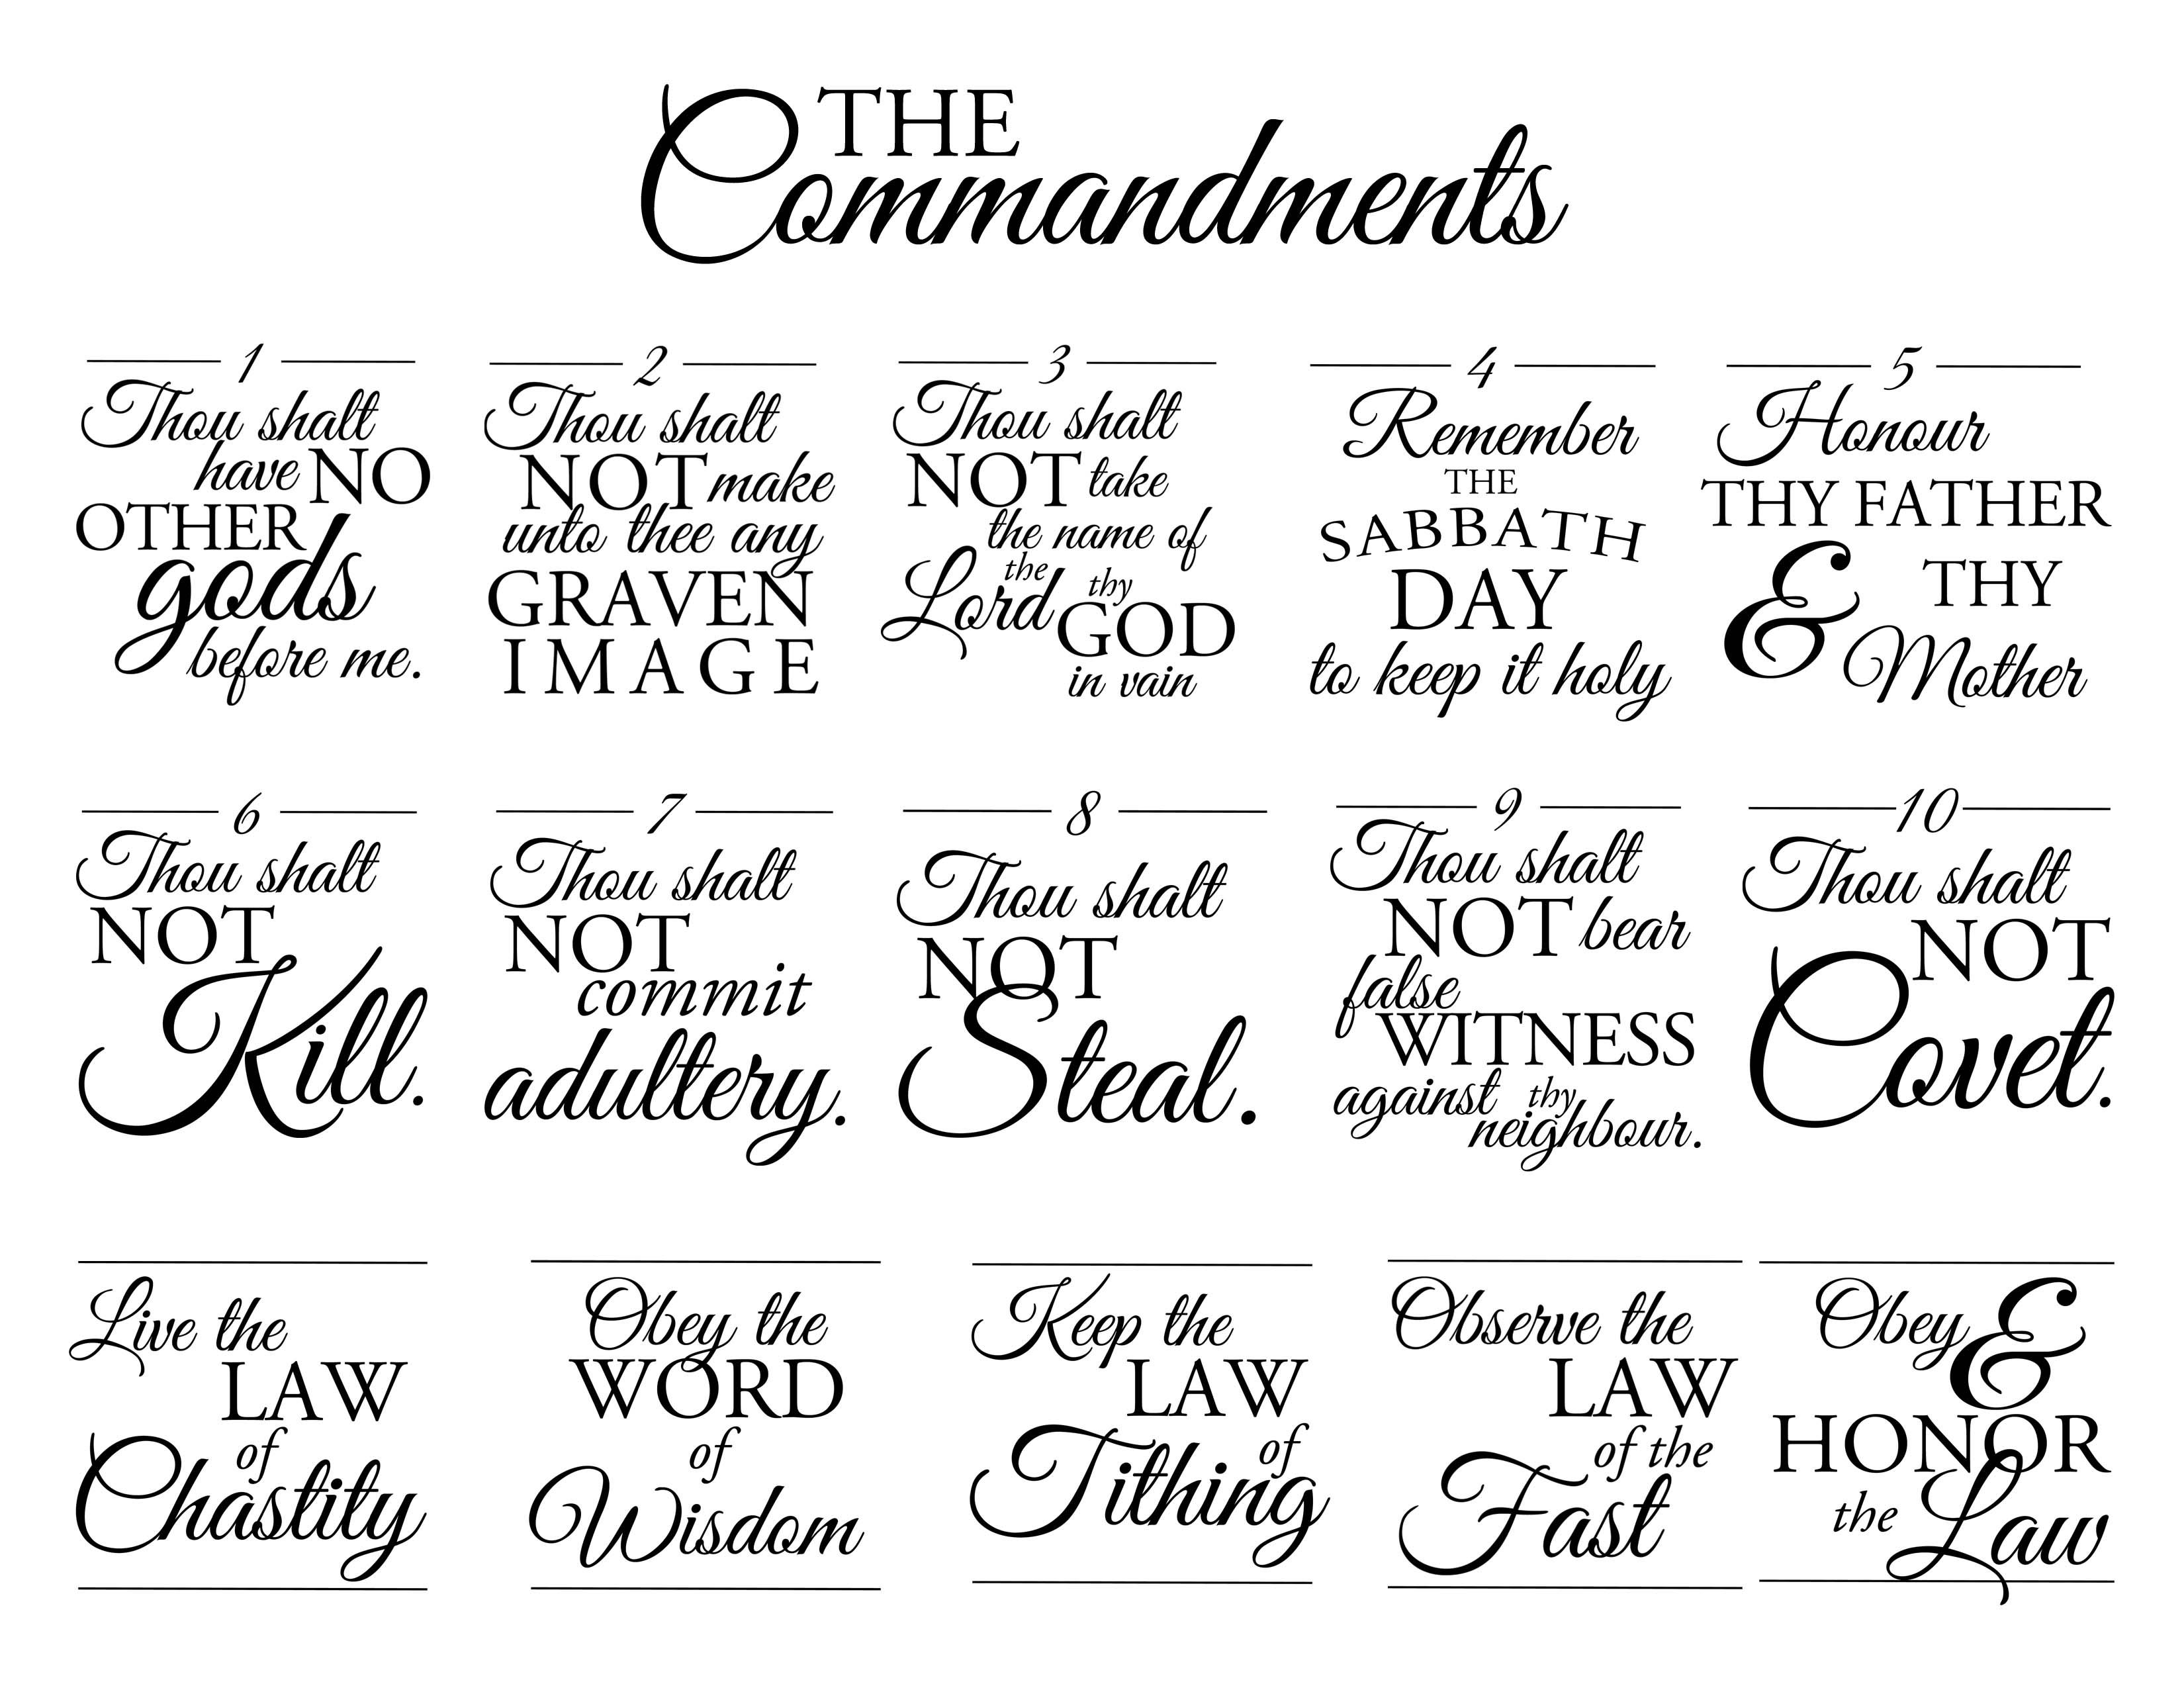 the commandments one page book of mormon pinterest